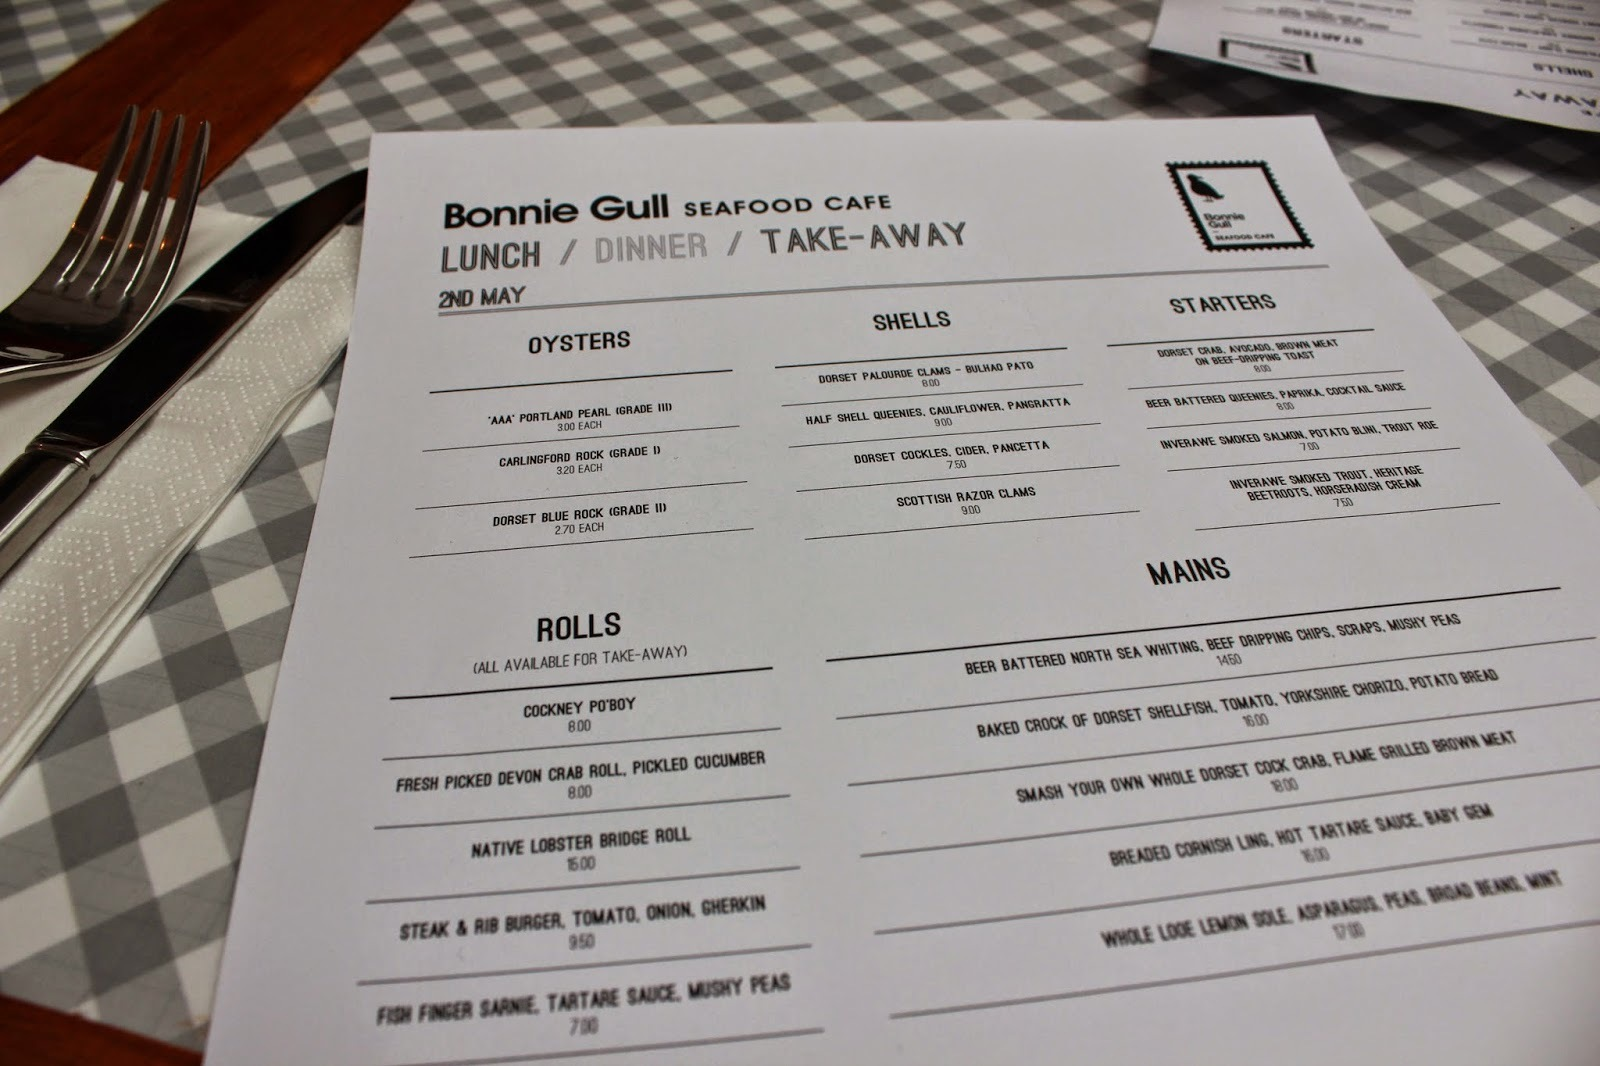 Bonnie Gull Seafood Cafe, Exmouth Market